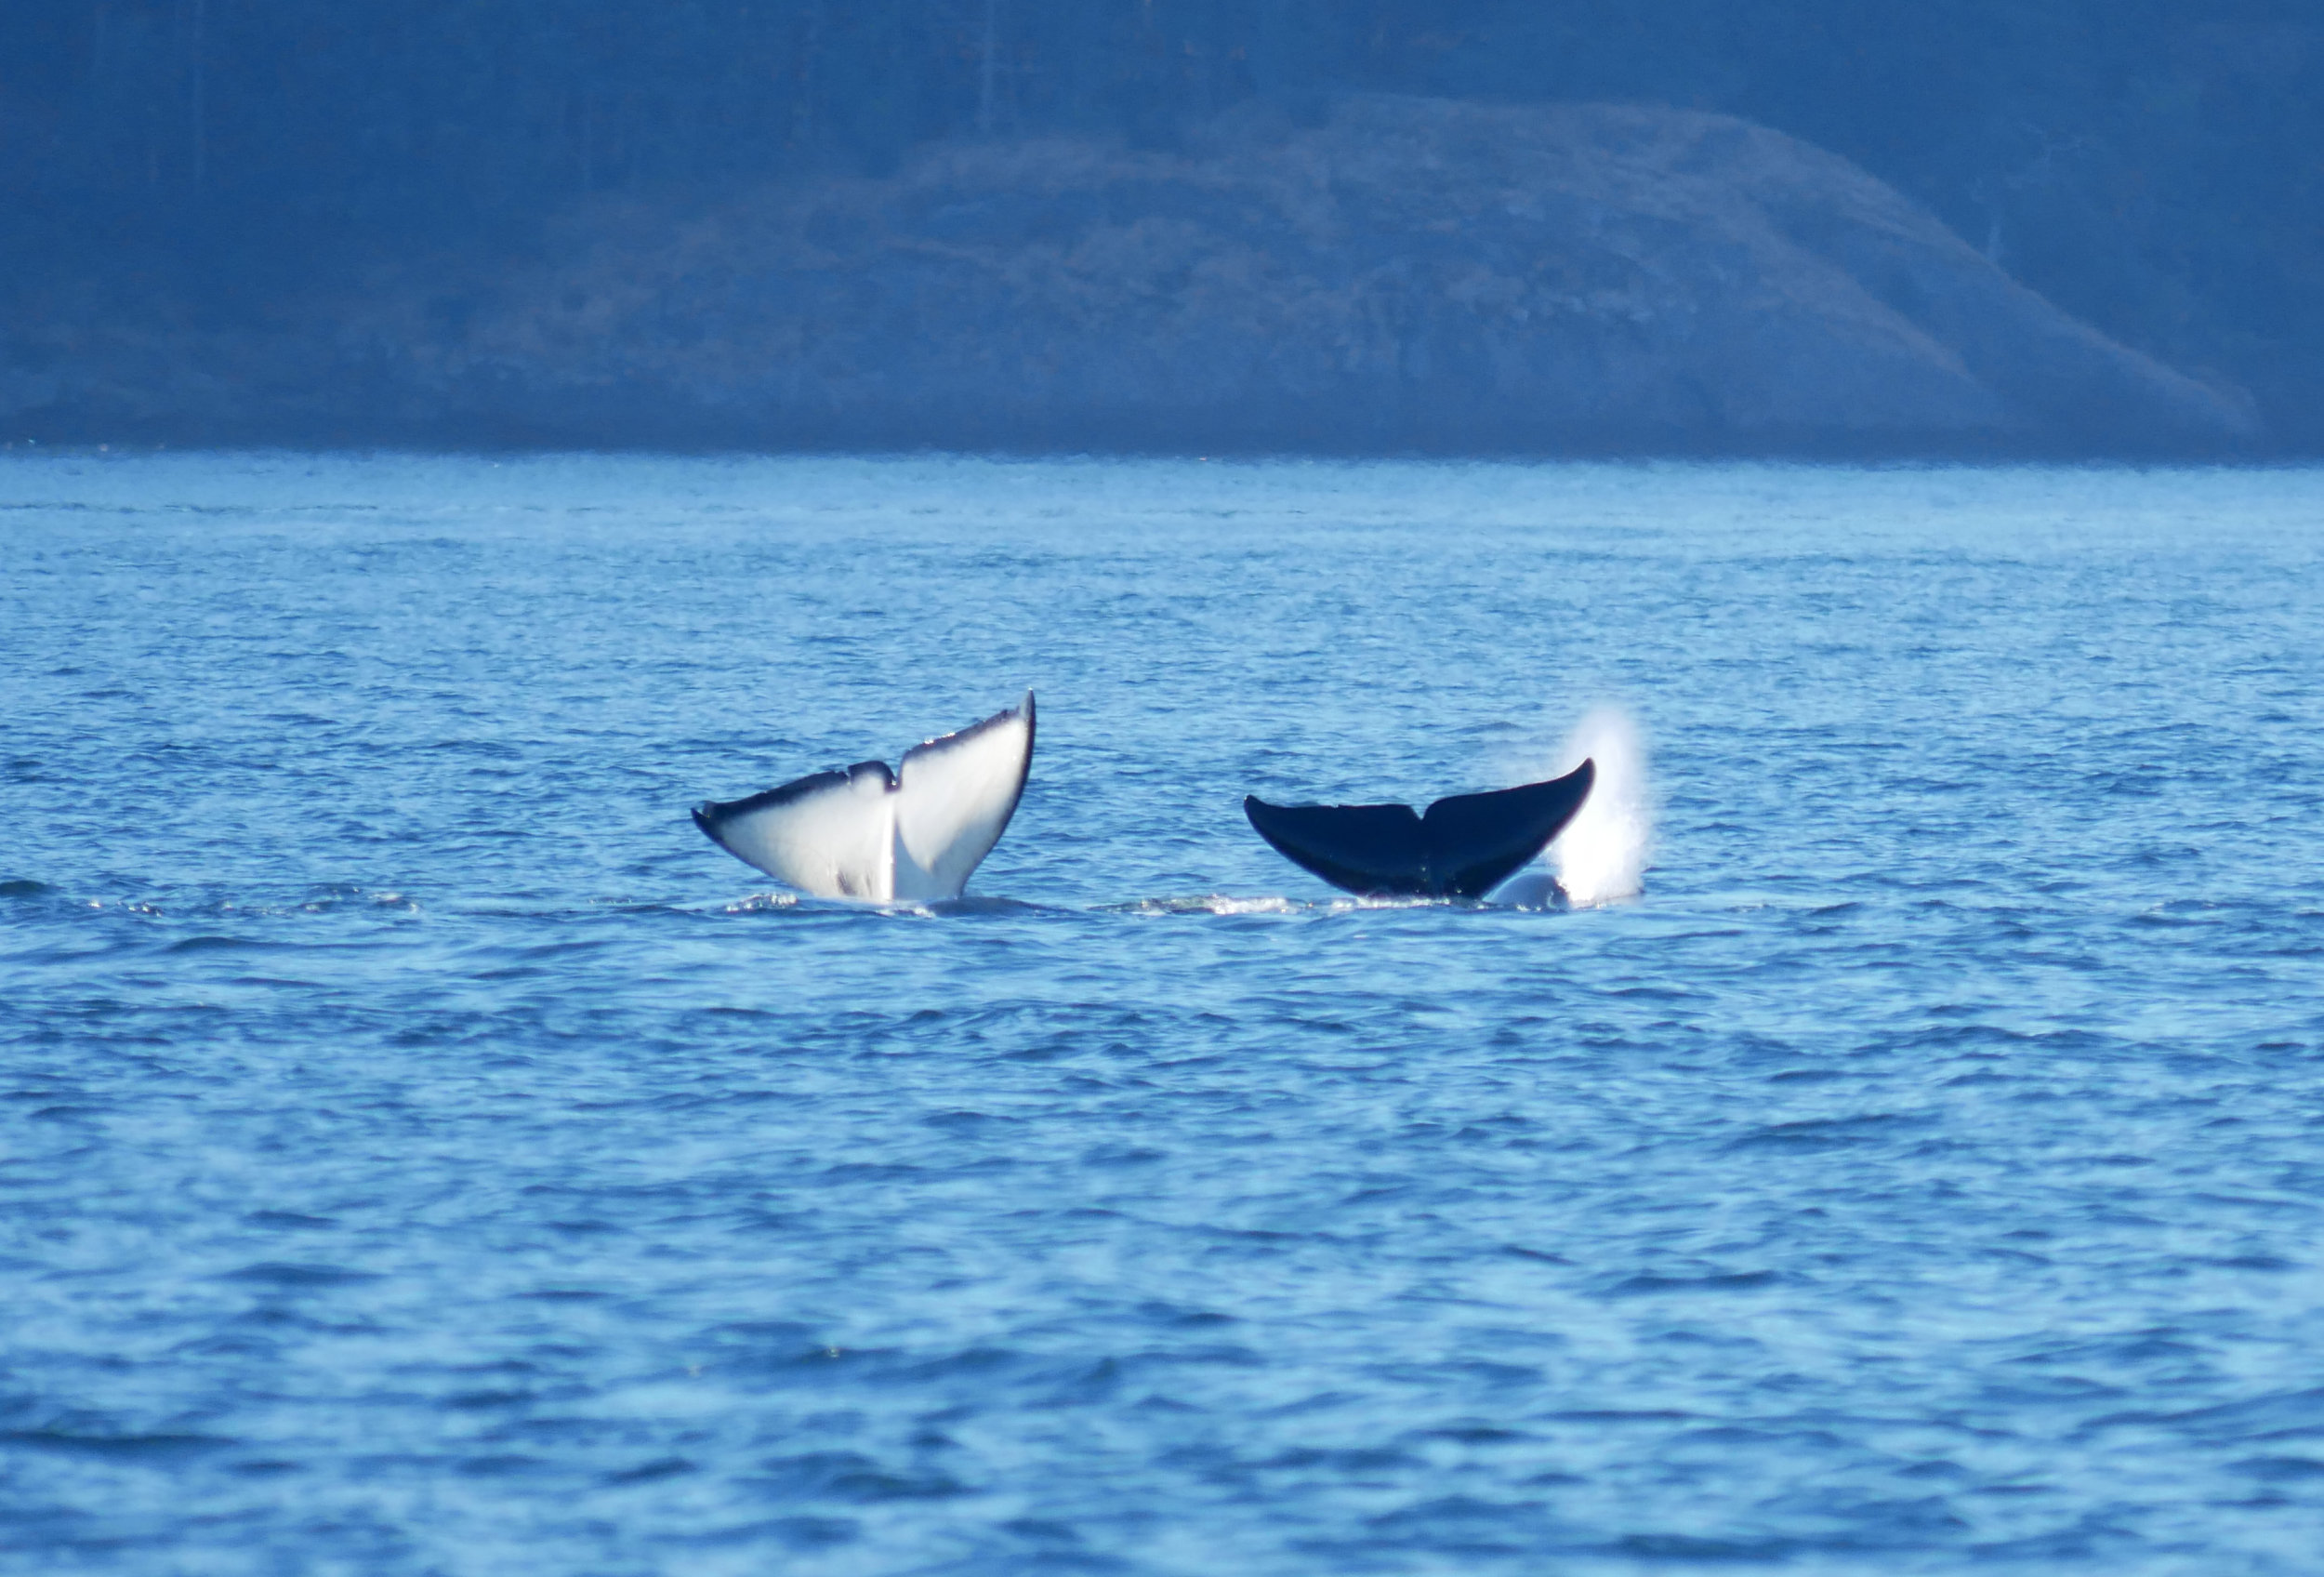 Two orca doing synchronized fluke waves. Photo by Alanna Vivani.